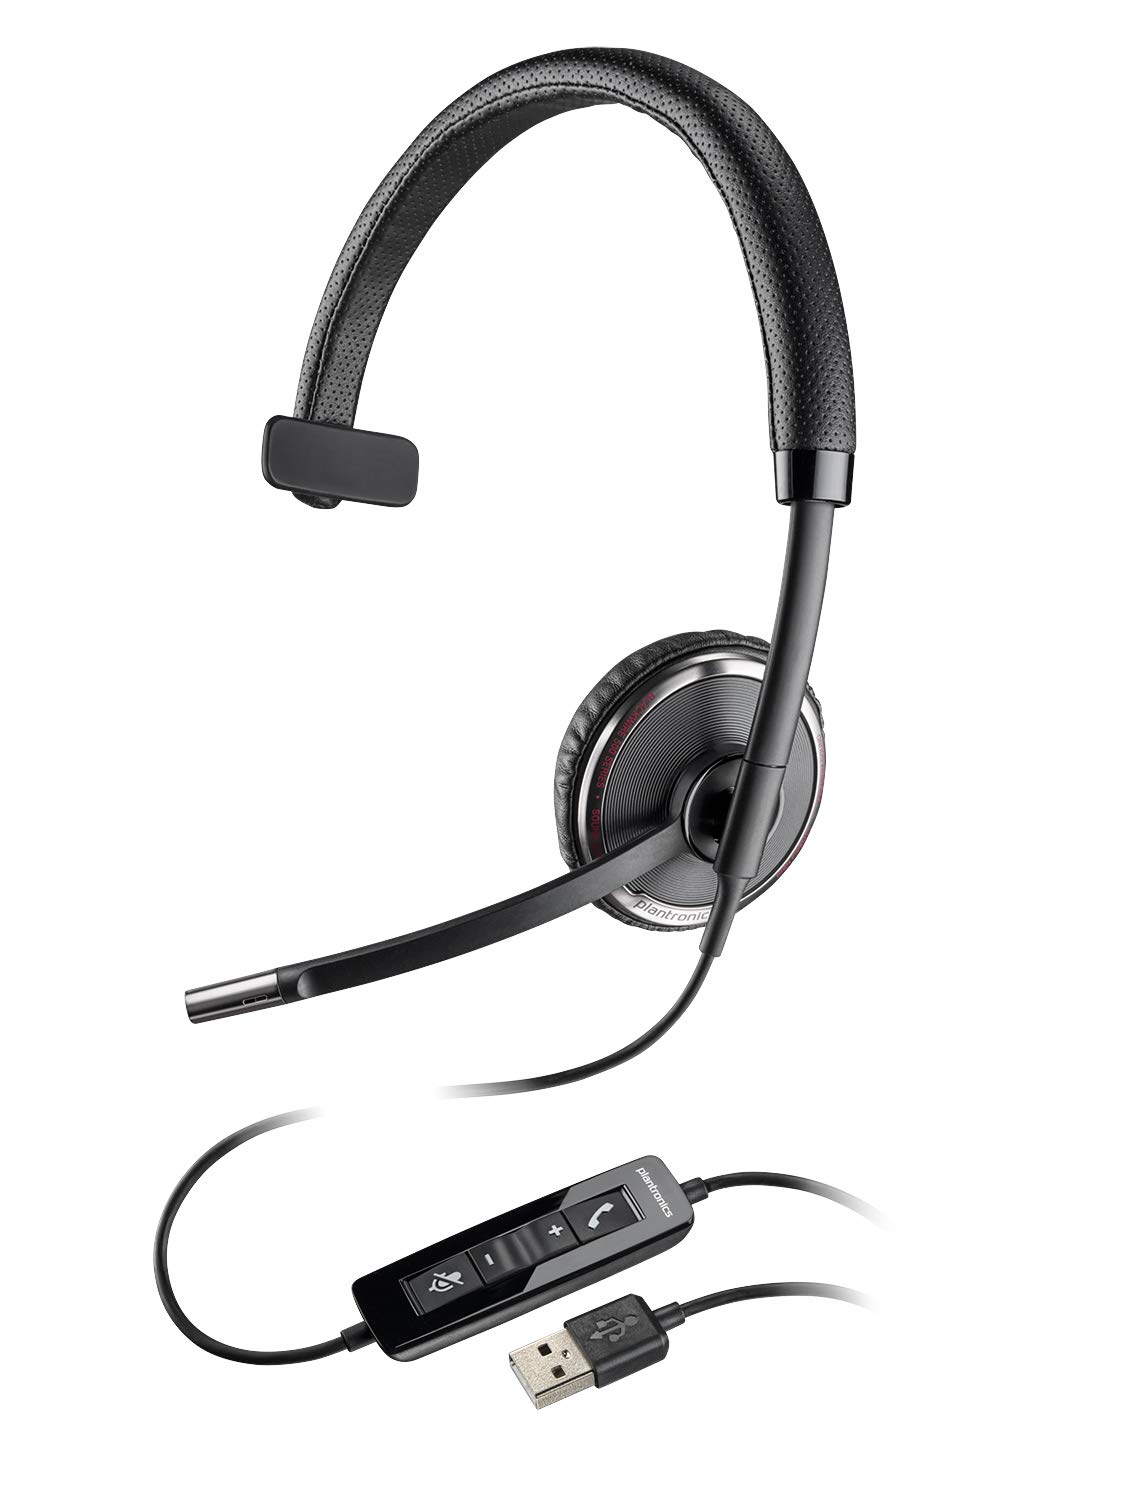 Plantronics Blackwire 500 C520-M USB Binaural Microsoft-Certified Version Headphone 88861-02